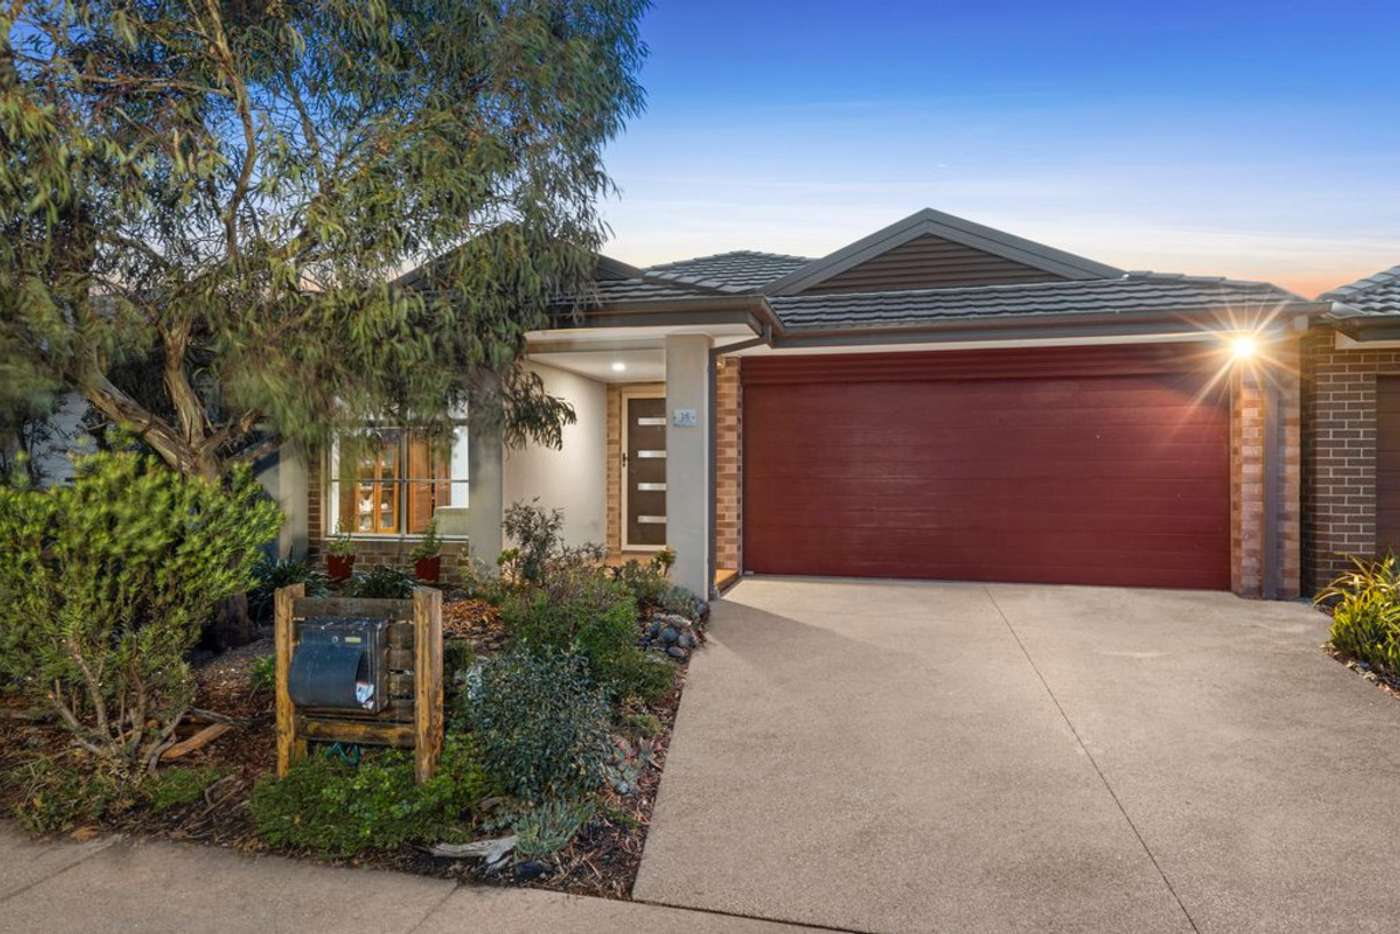 Main view of Homely house listing, 16 Drift Lane, Armstrong Creek VIC 3217